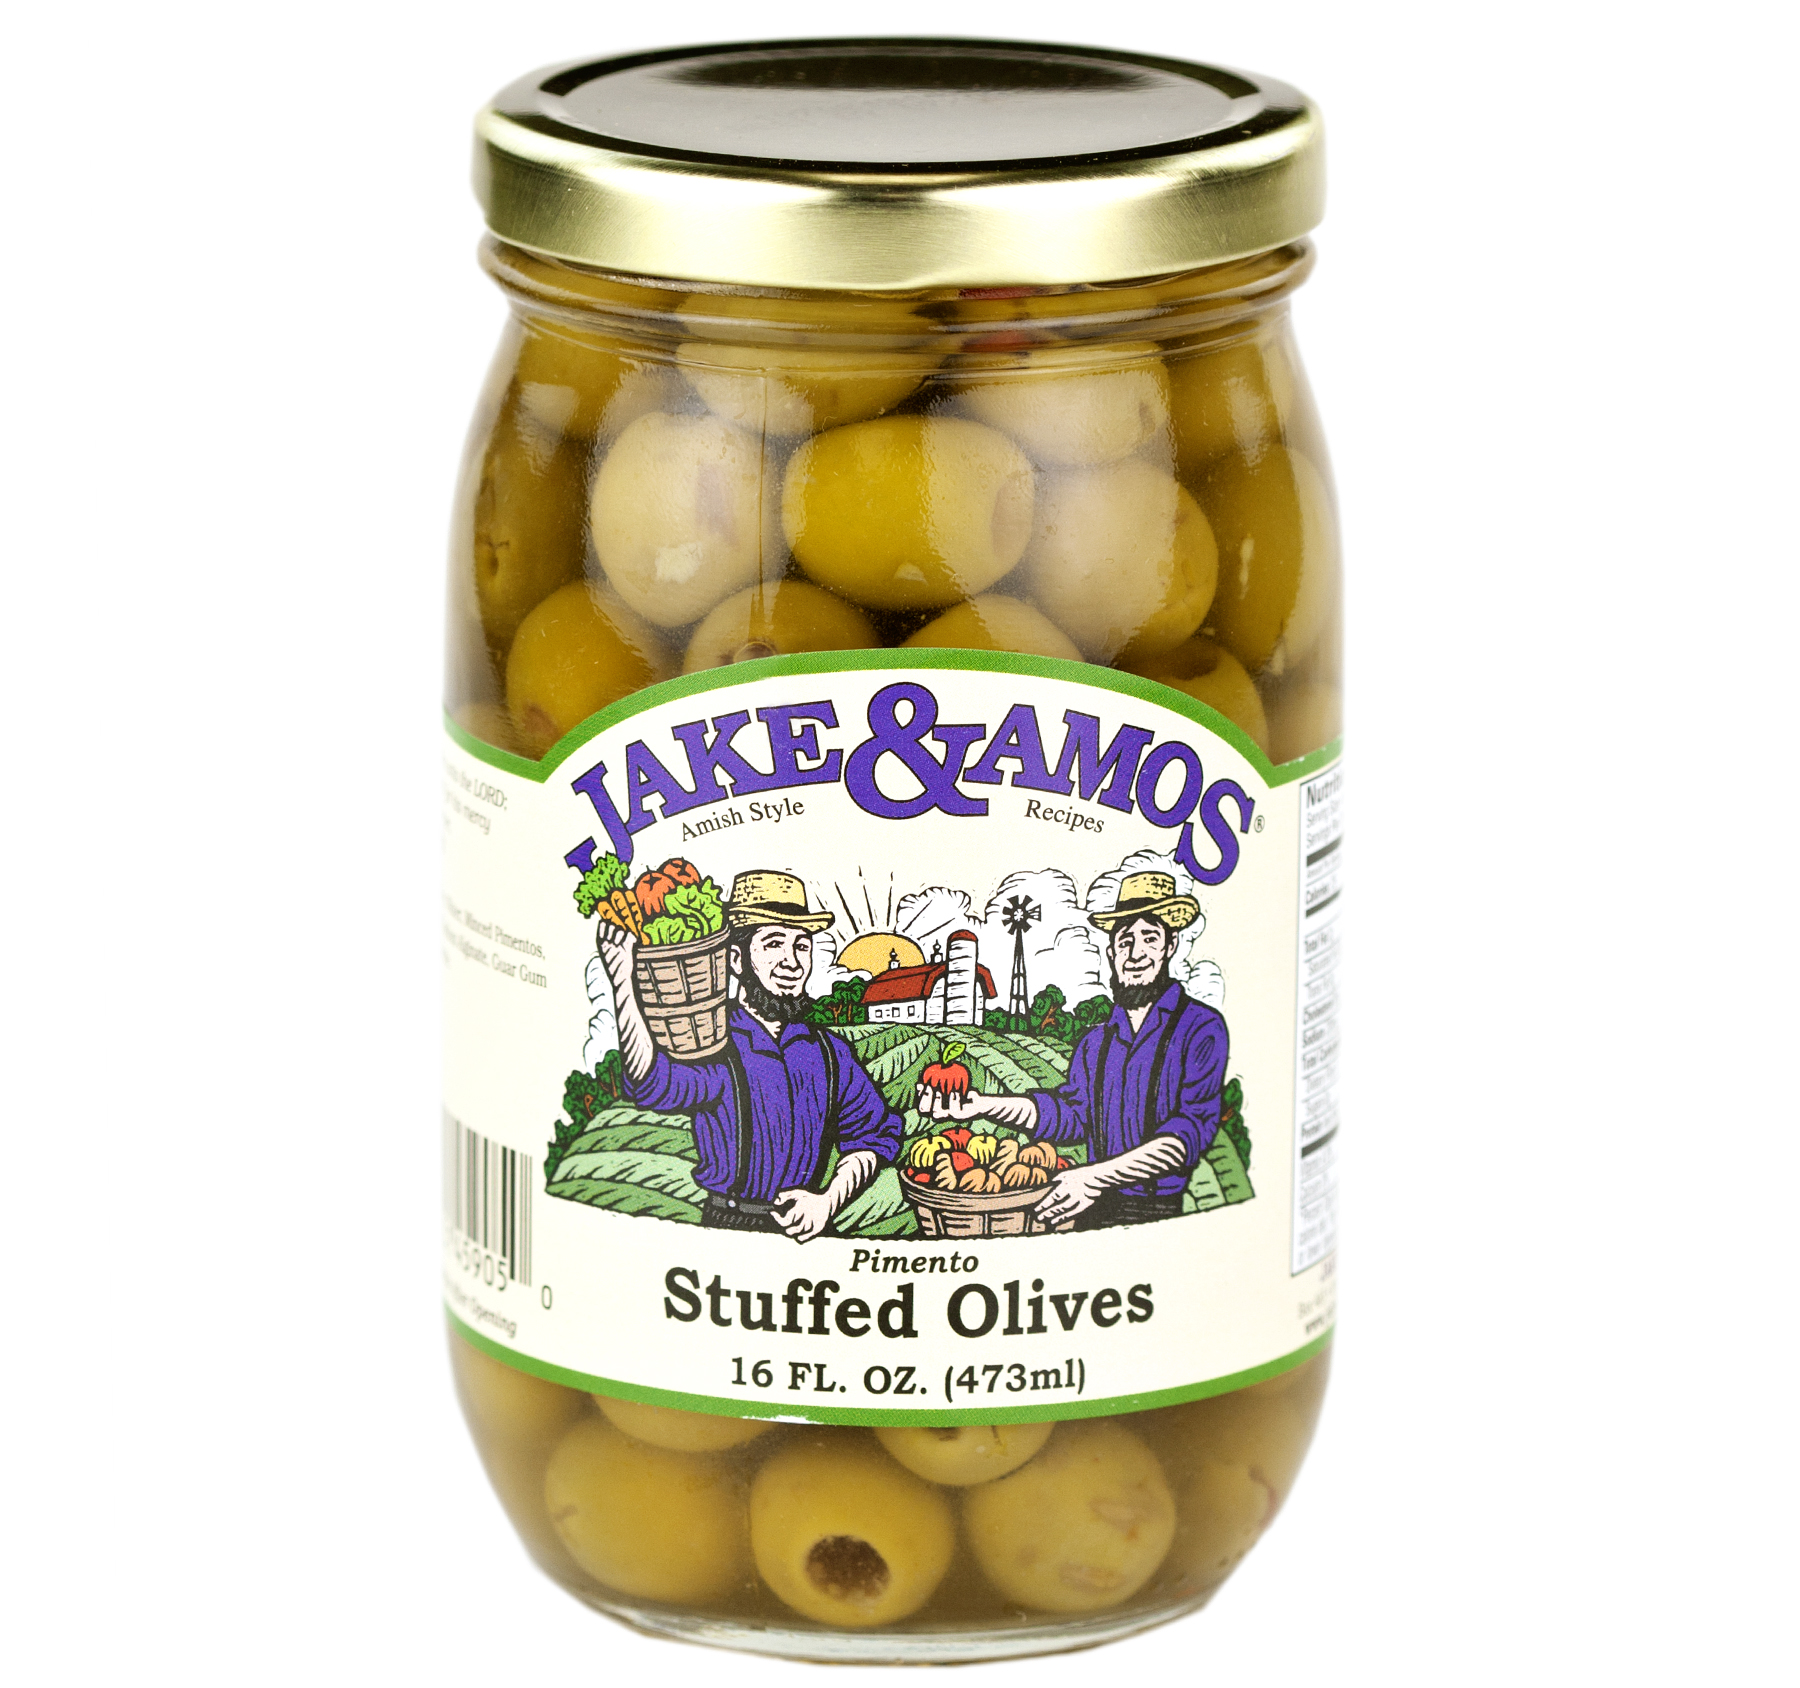 Jake & Amos Pimento Stuffed Olives 16oz (2 Pack)